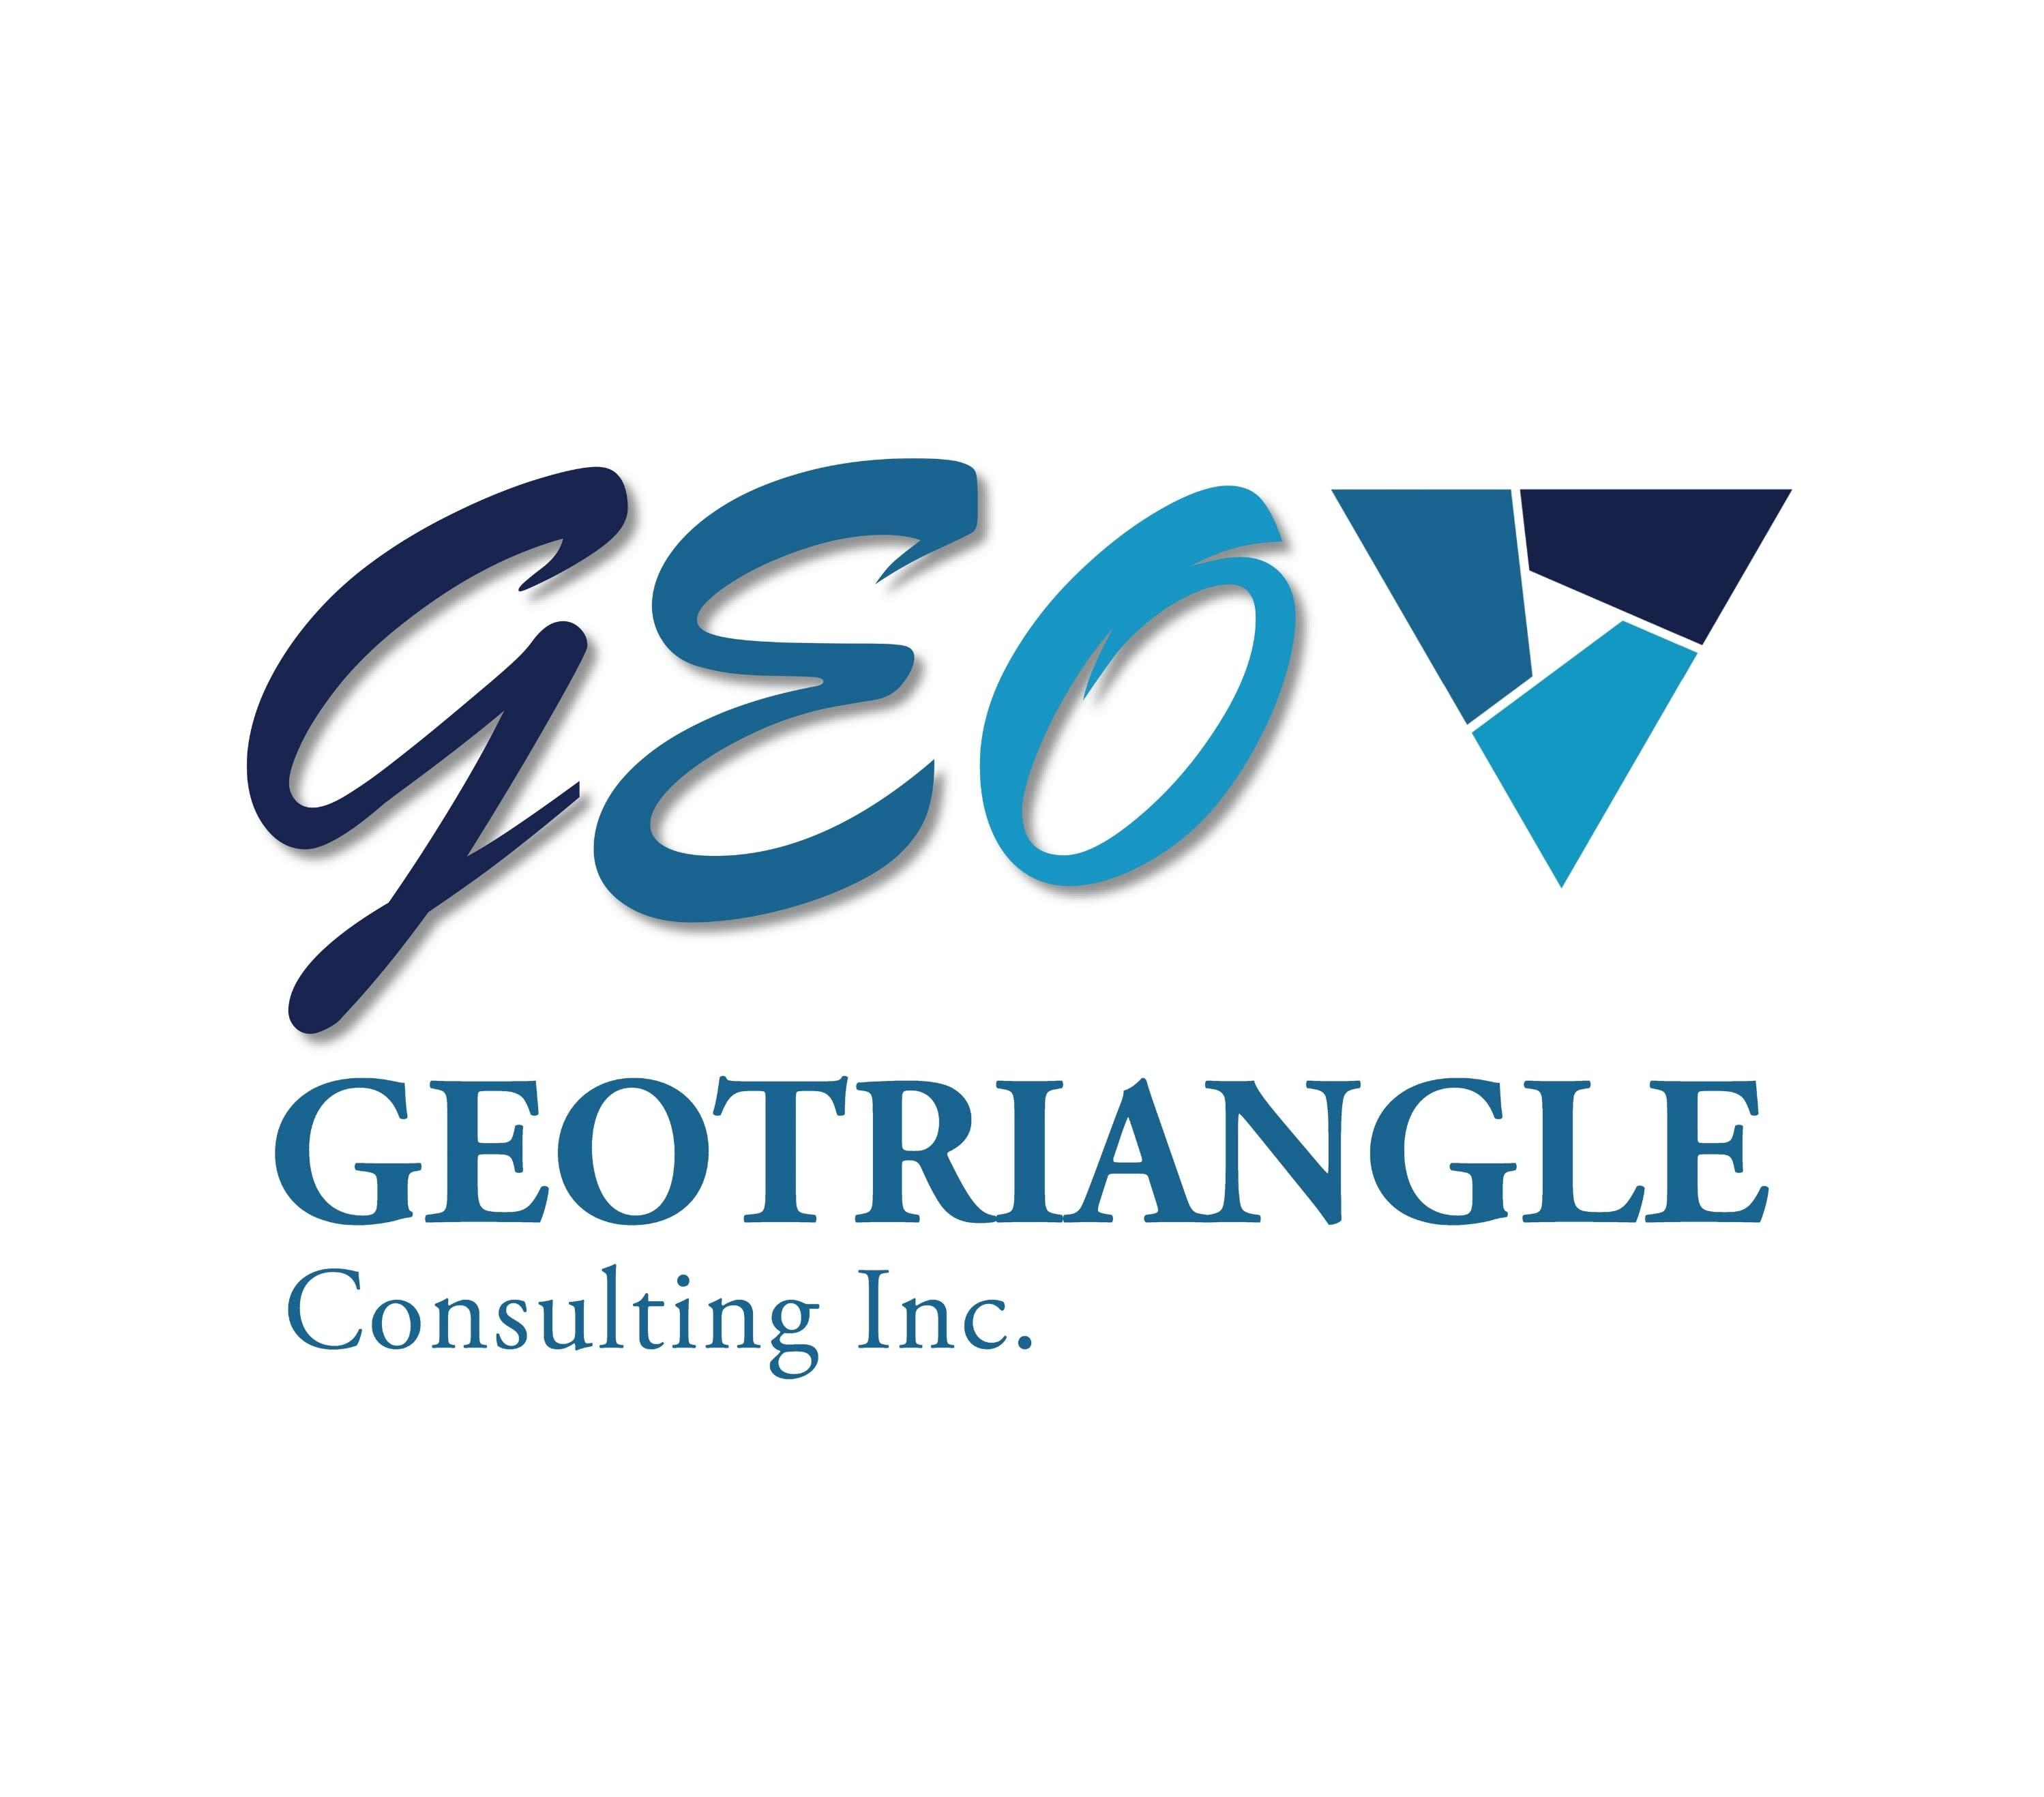 GeoTriangle Consulting Inc.